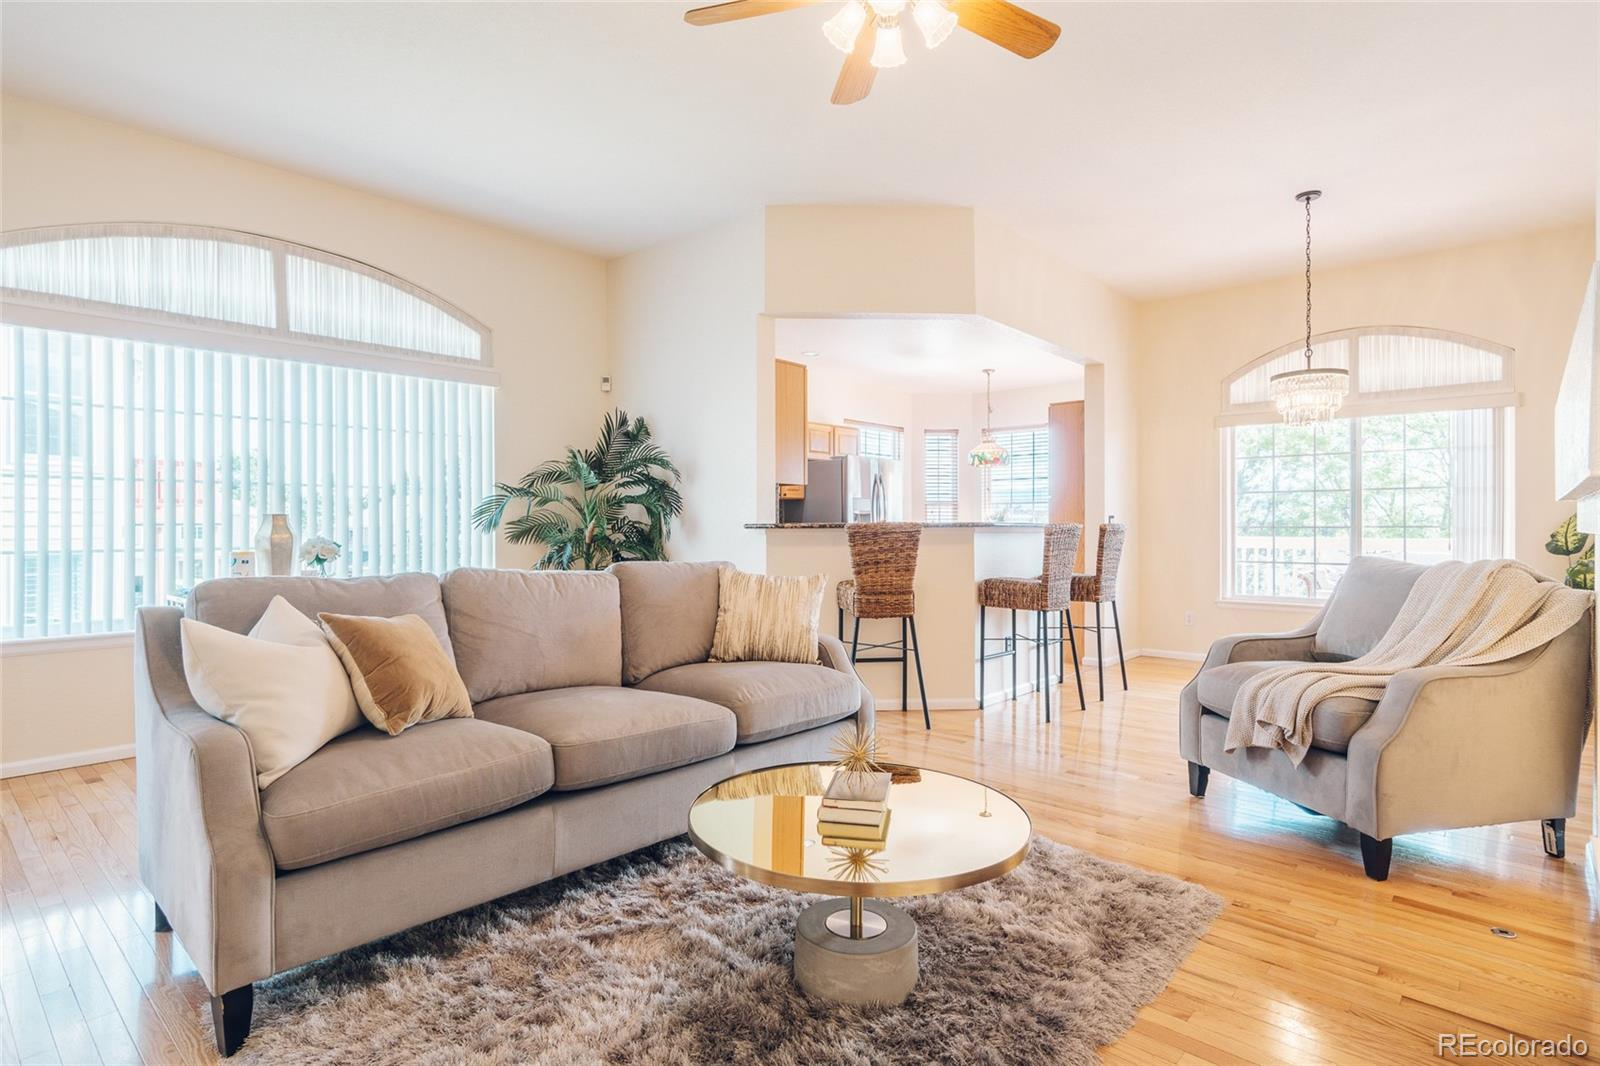 MLS# 4859119 - 1 - 9137 Woodland Drive, Highlands Ranch, CO 80126